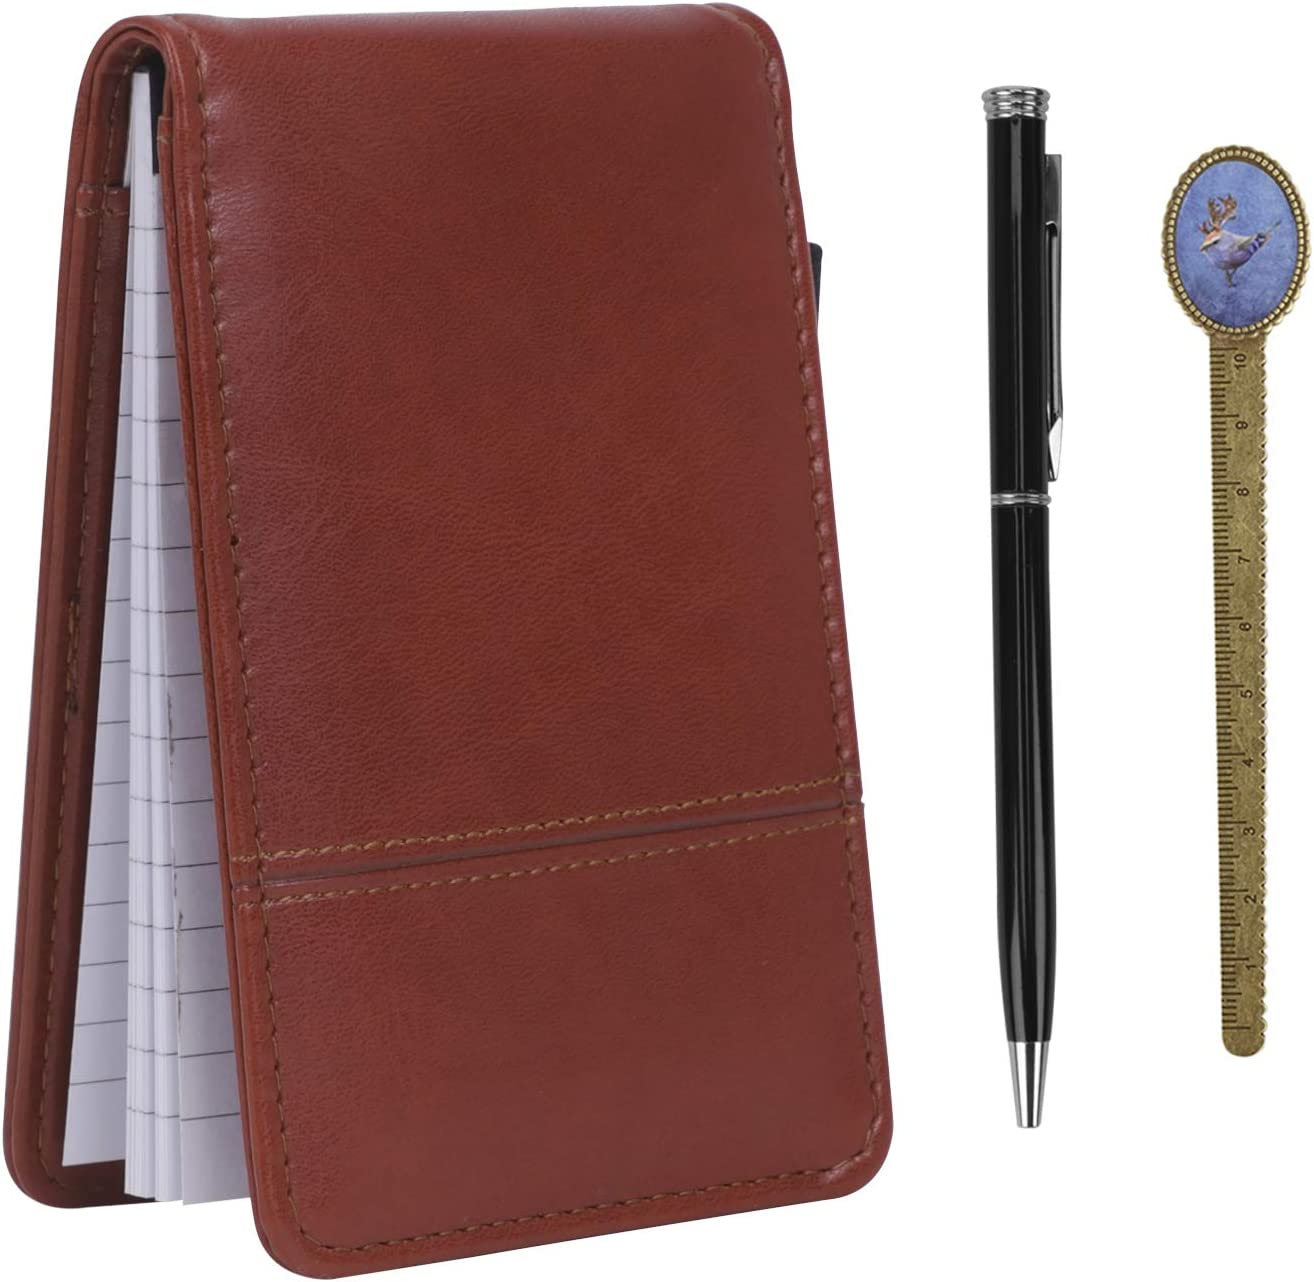 Leather Memo Book with Max 44% OFF Calculator A7 Limited time sale Notebook Pocket Cover Jotte